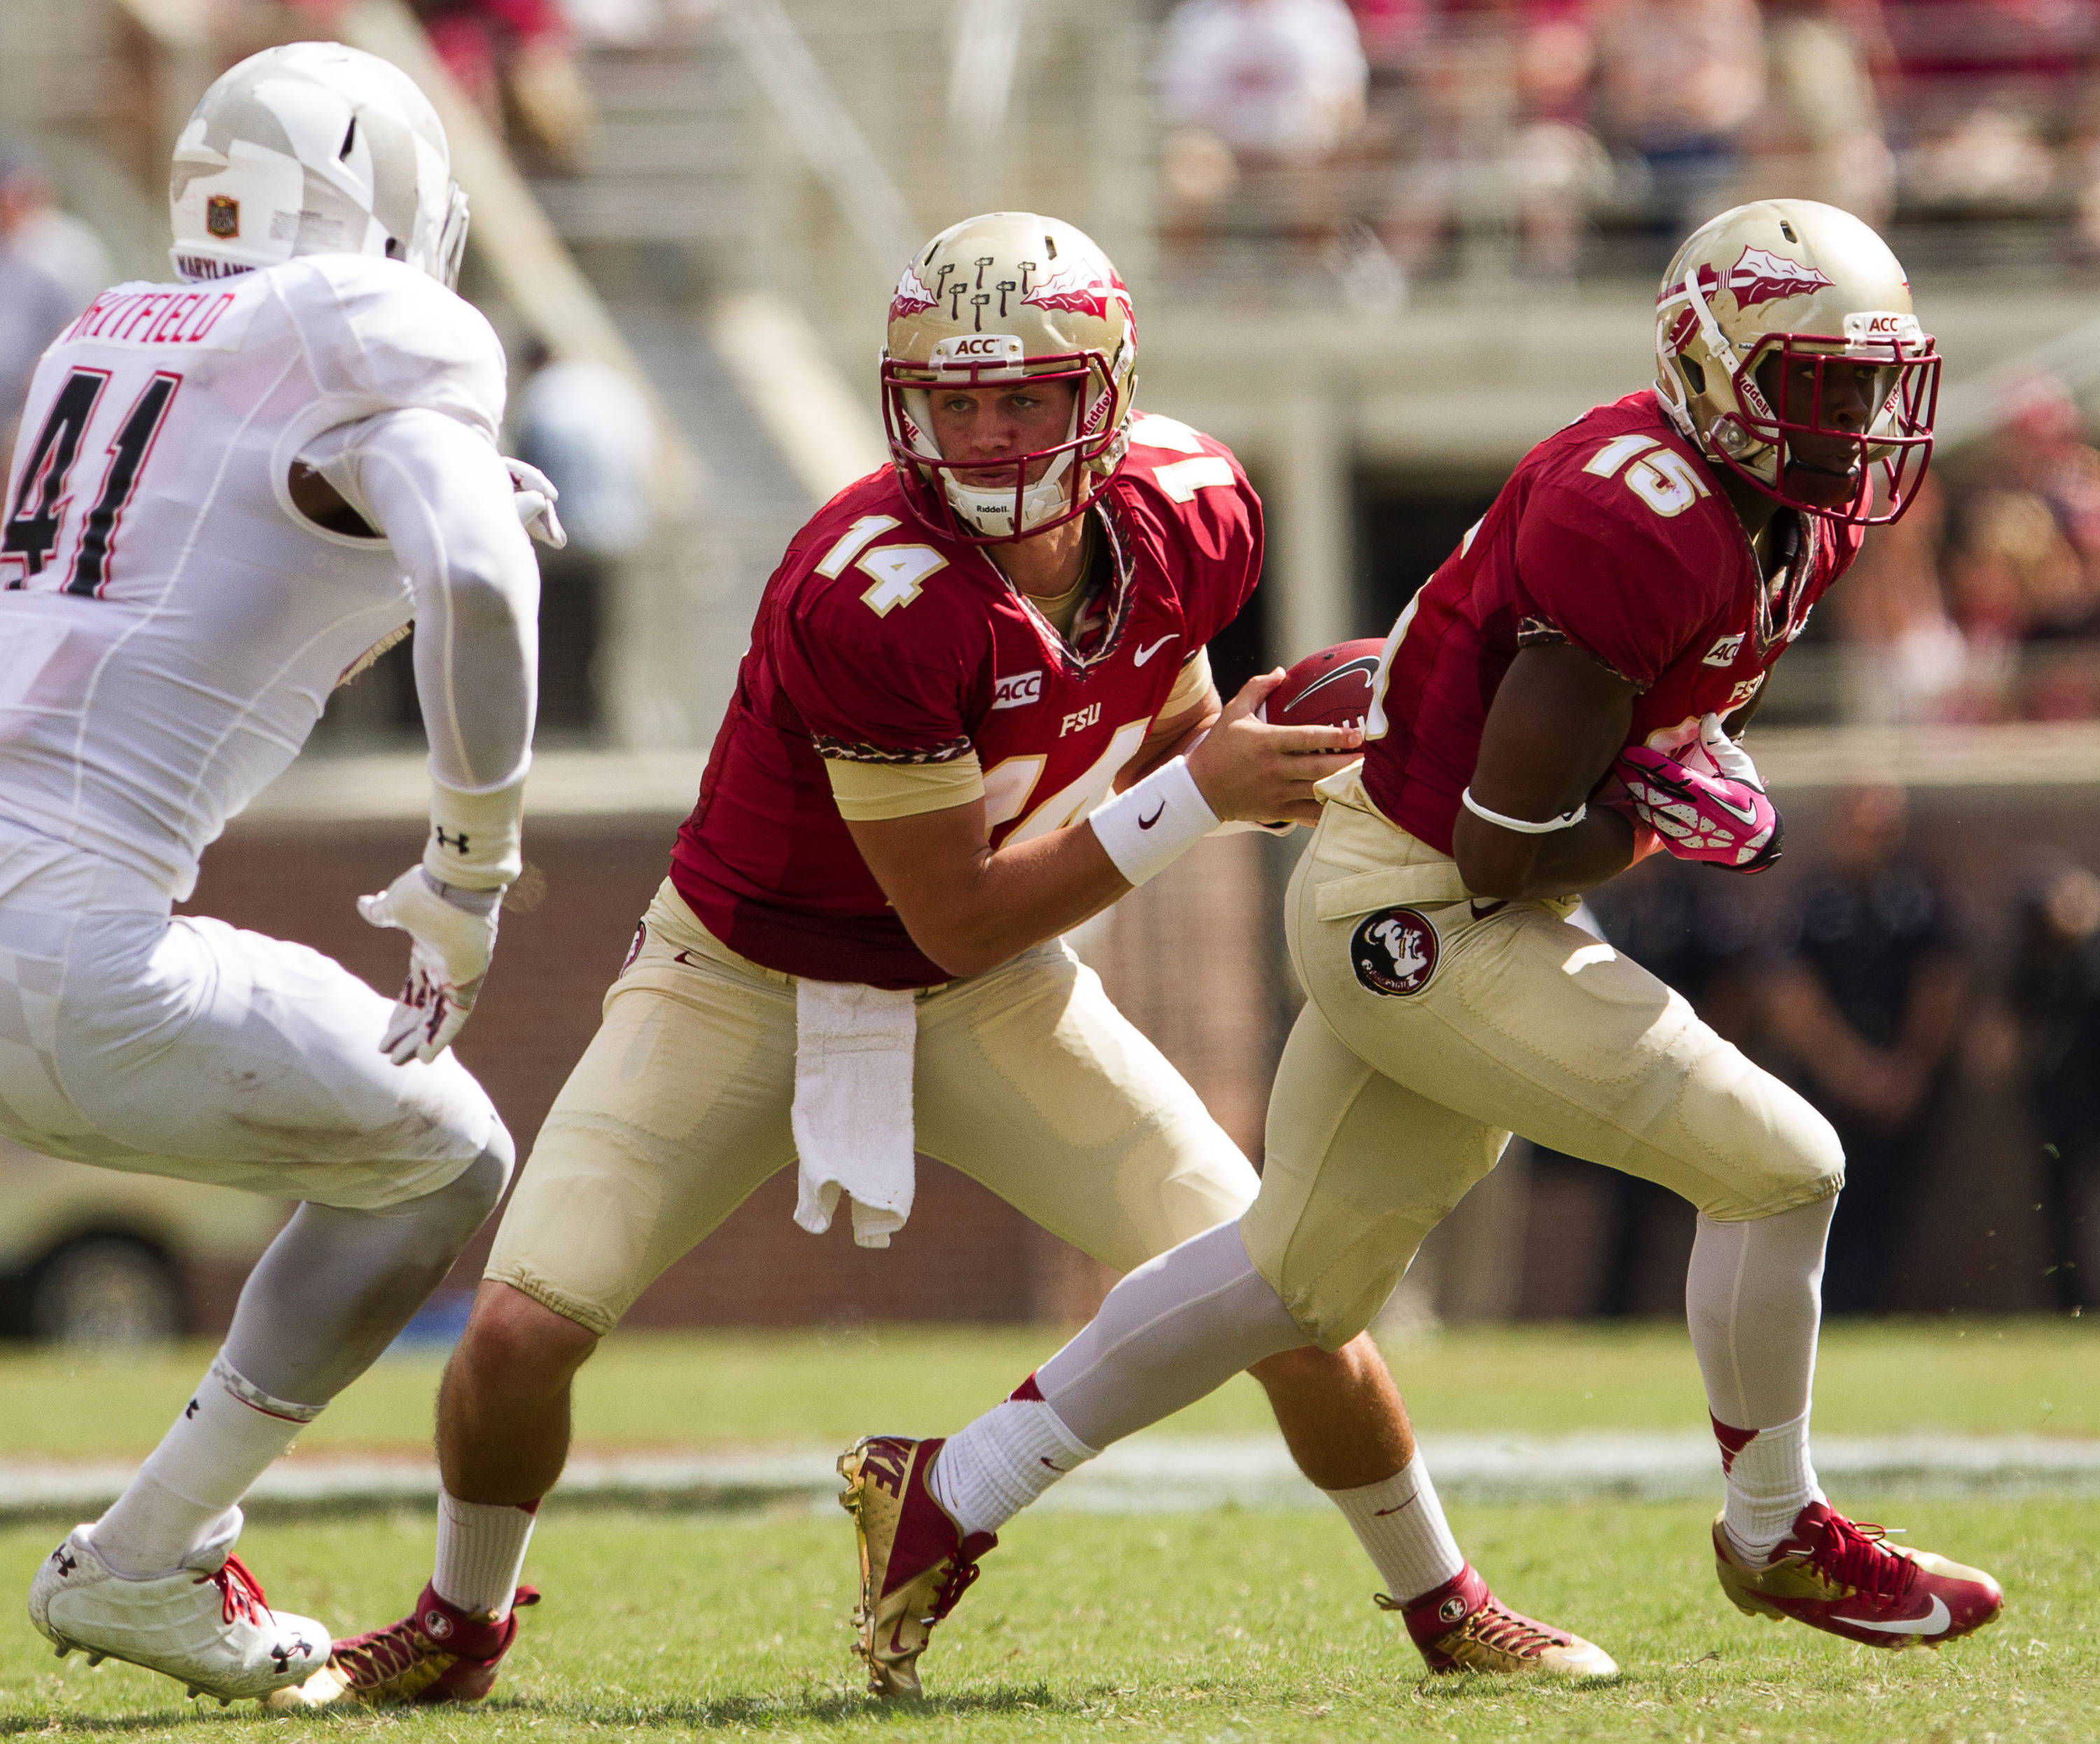 Jacob Coker (14) fakes a handoff before running for a touchdown during FSU Football's 63-0 shutout of Maryland on Saturday, October 5, 2013 in Tallahassee, Fla.